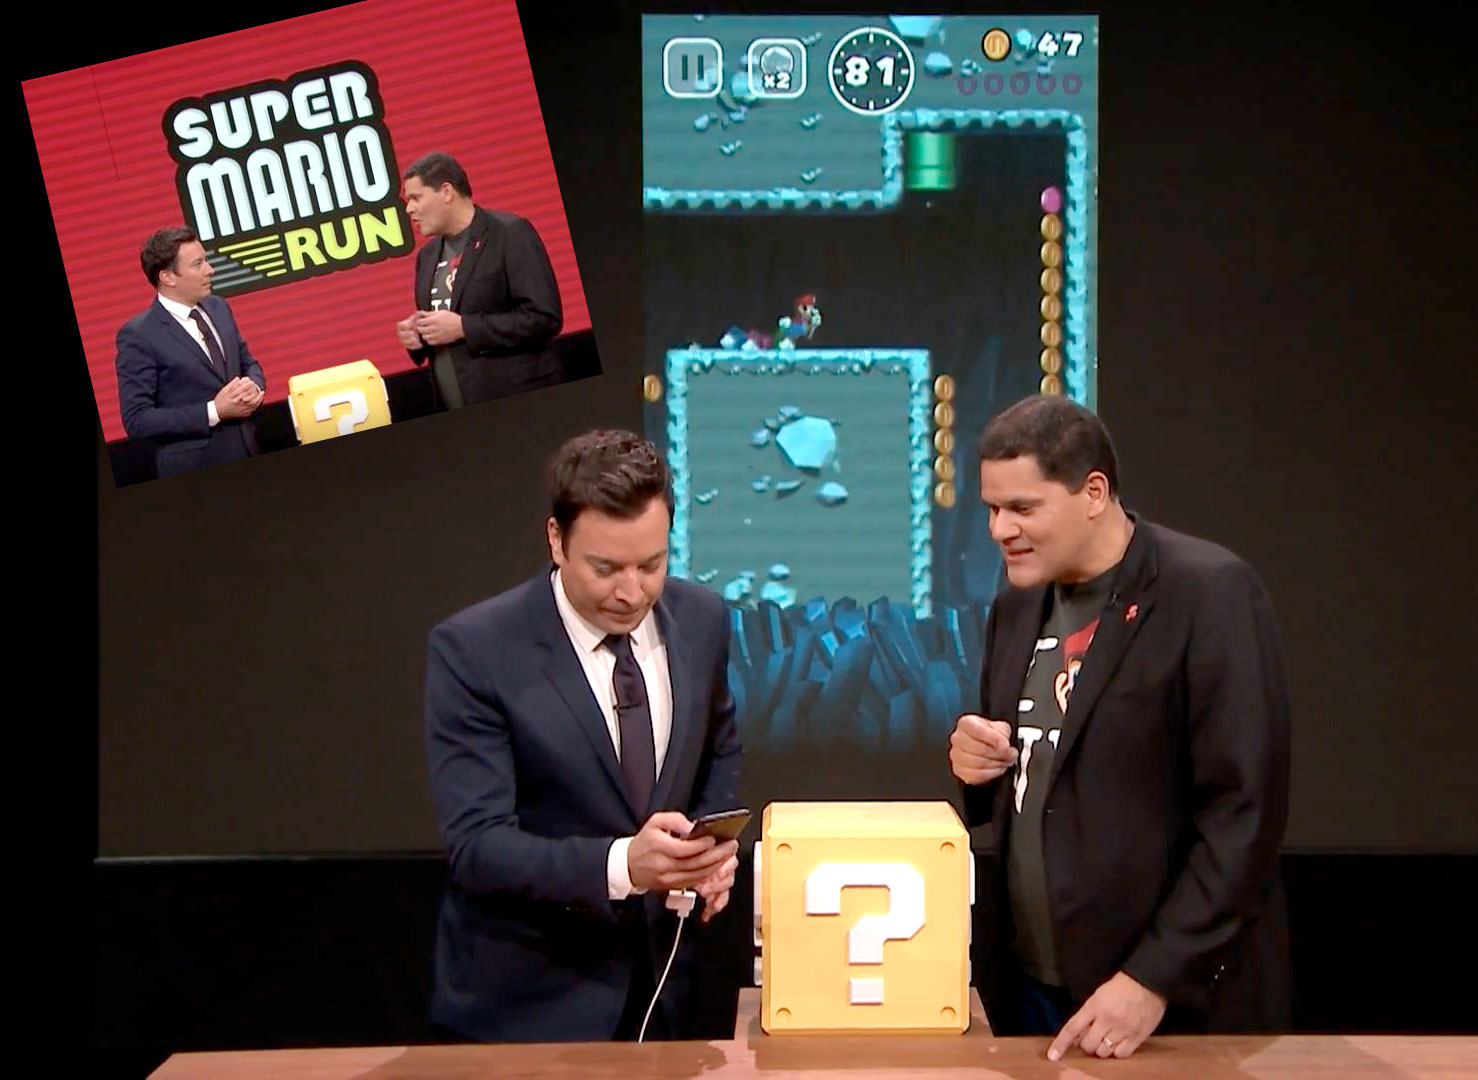 Jimmy Fallon playing Super Mario Run